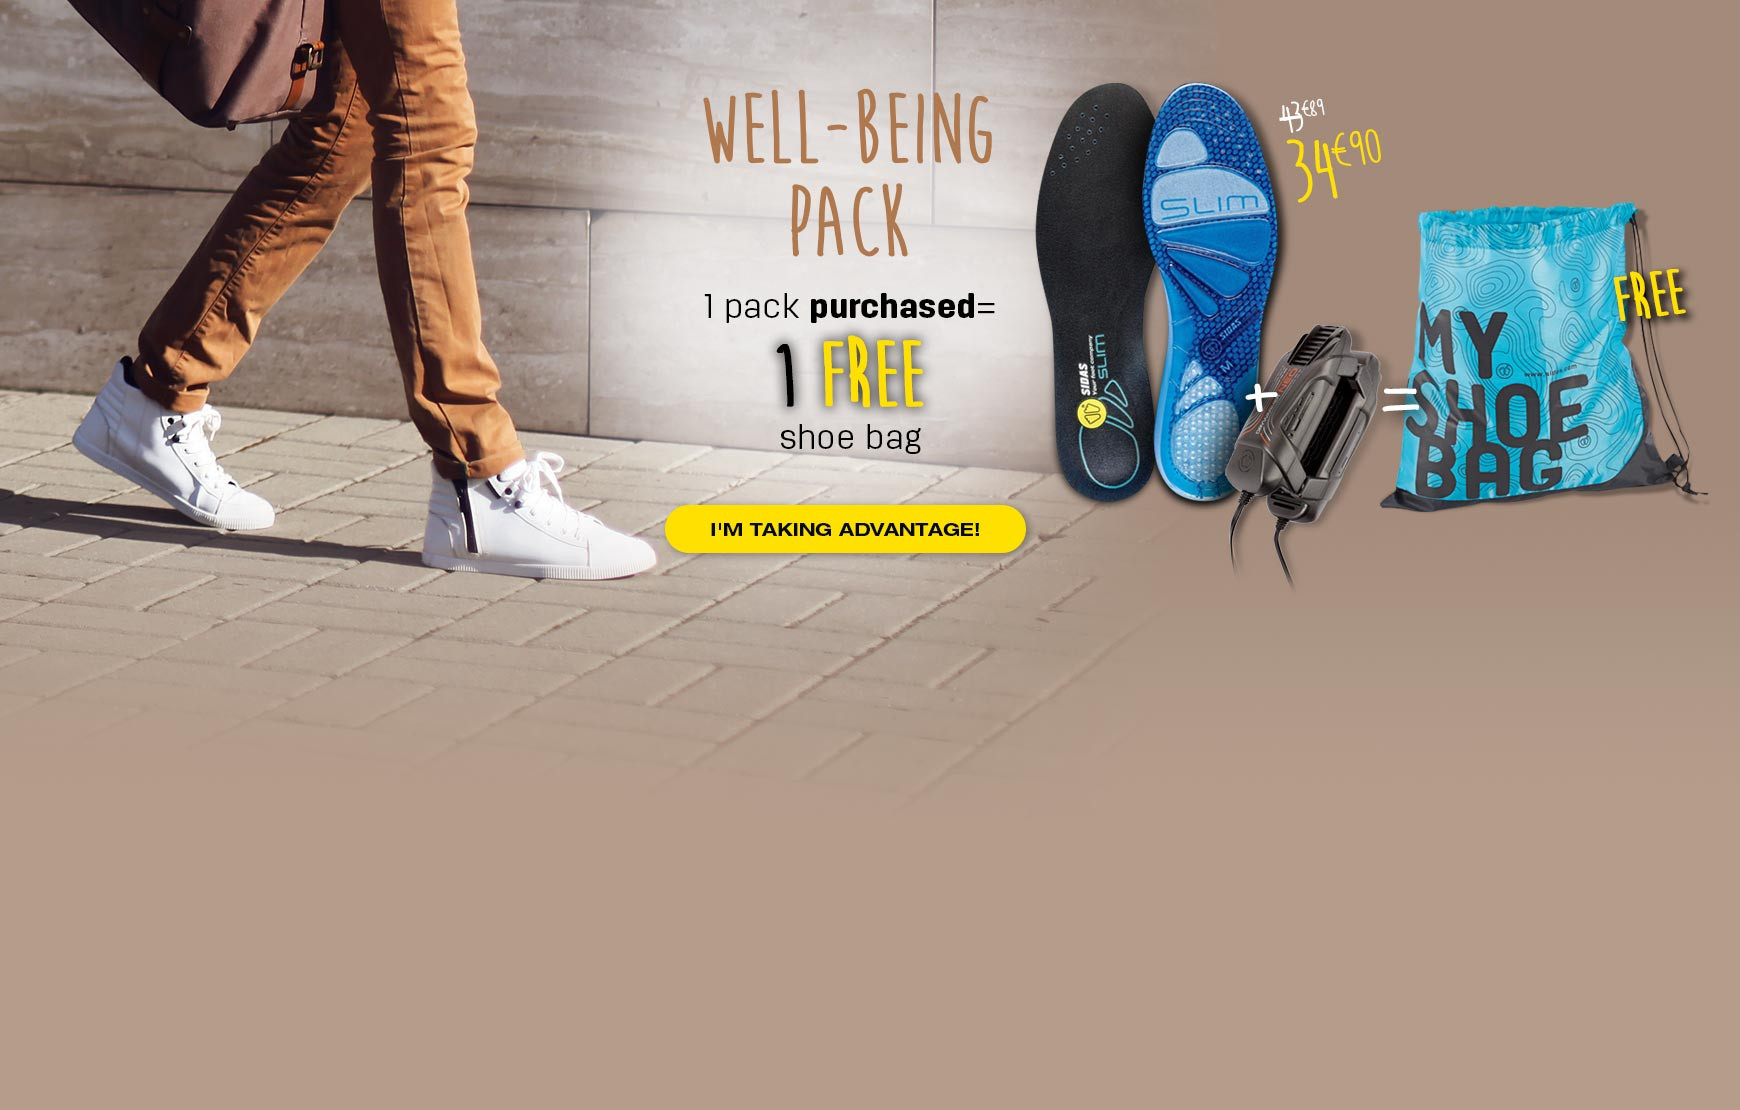 Get your free shoe bag when you purchased a well-being pack